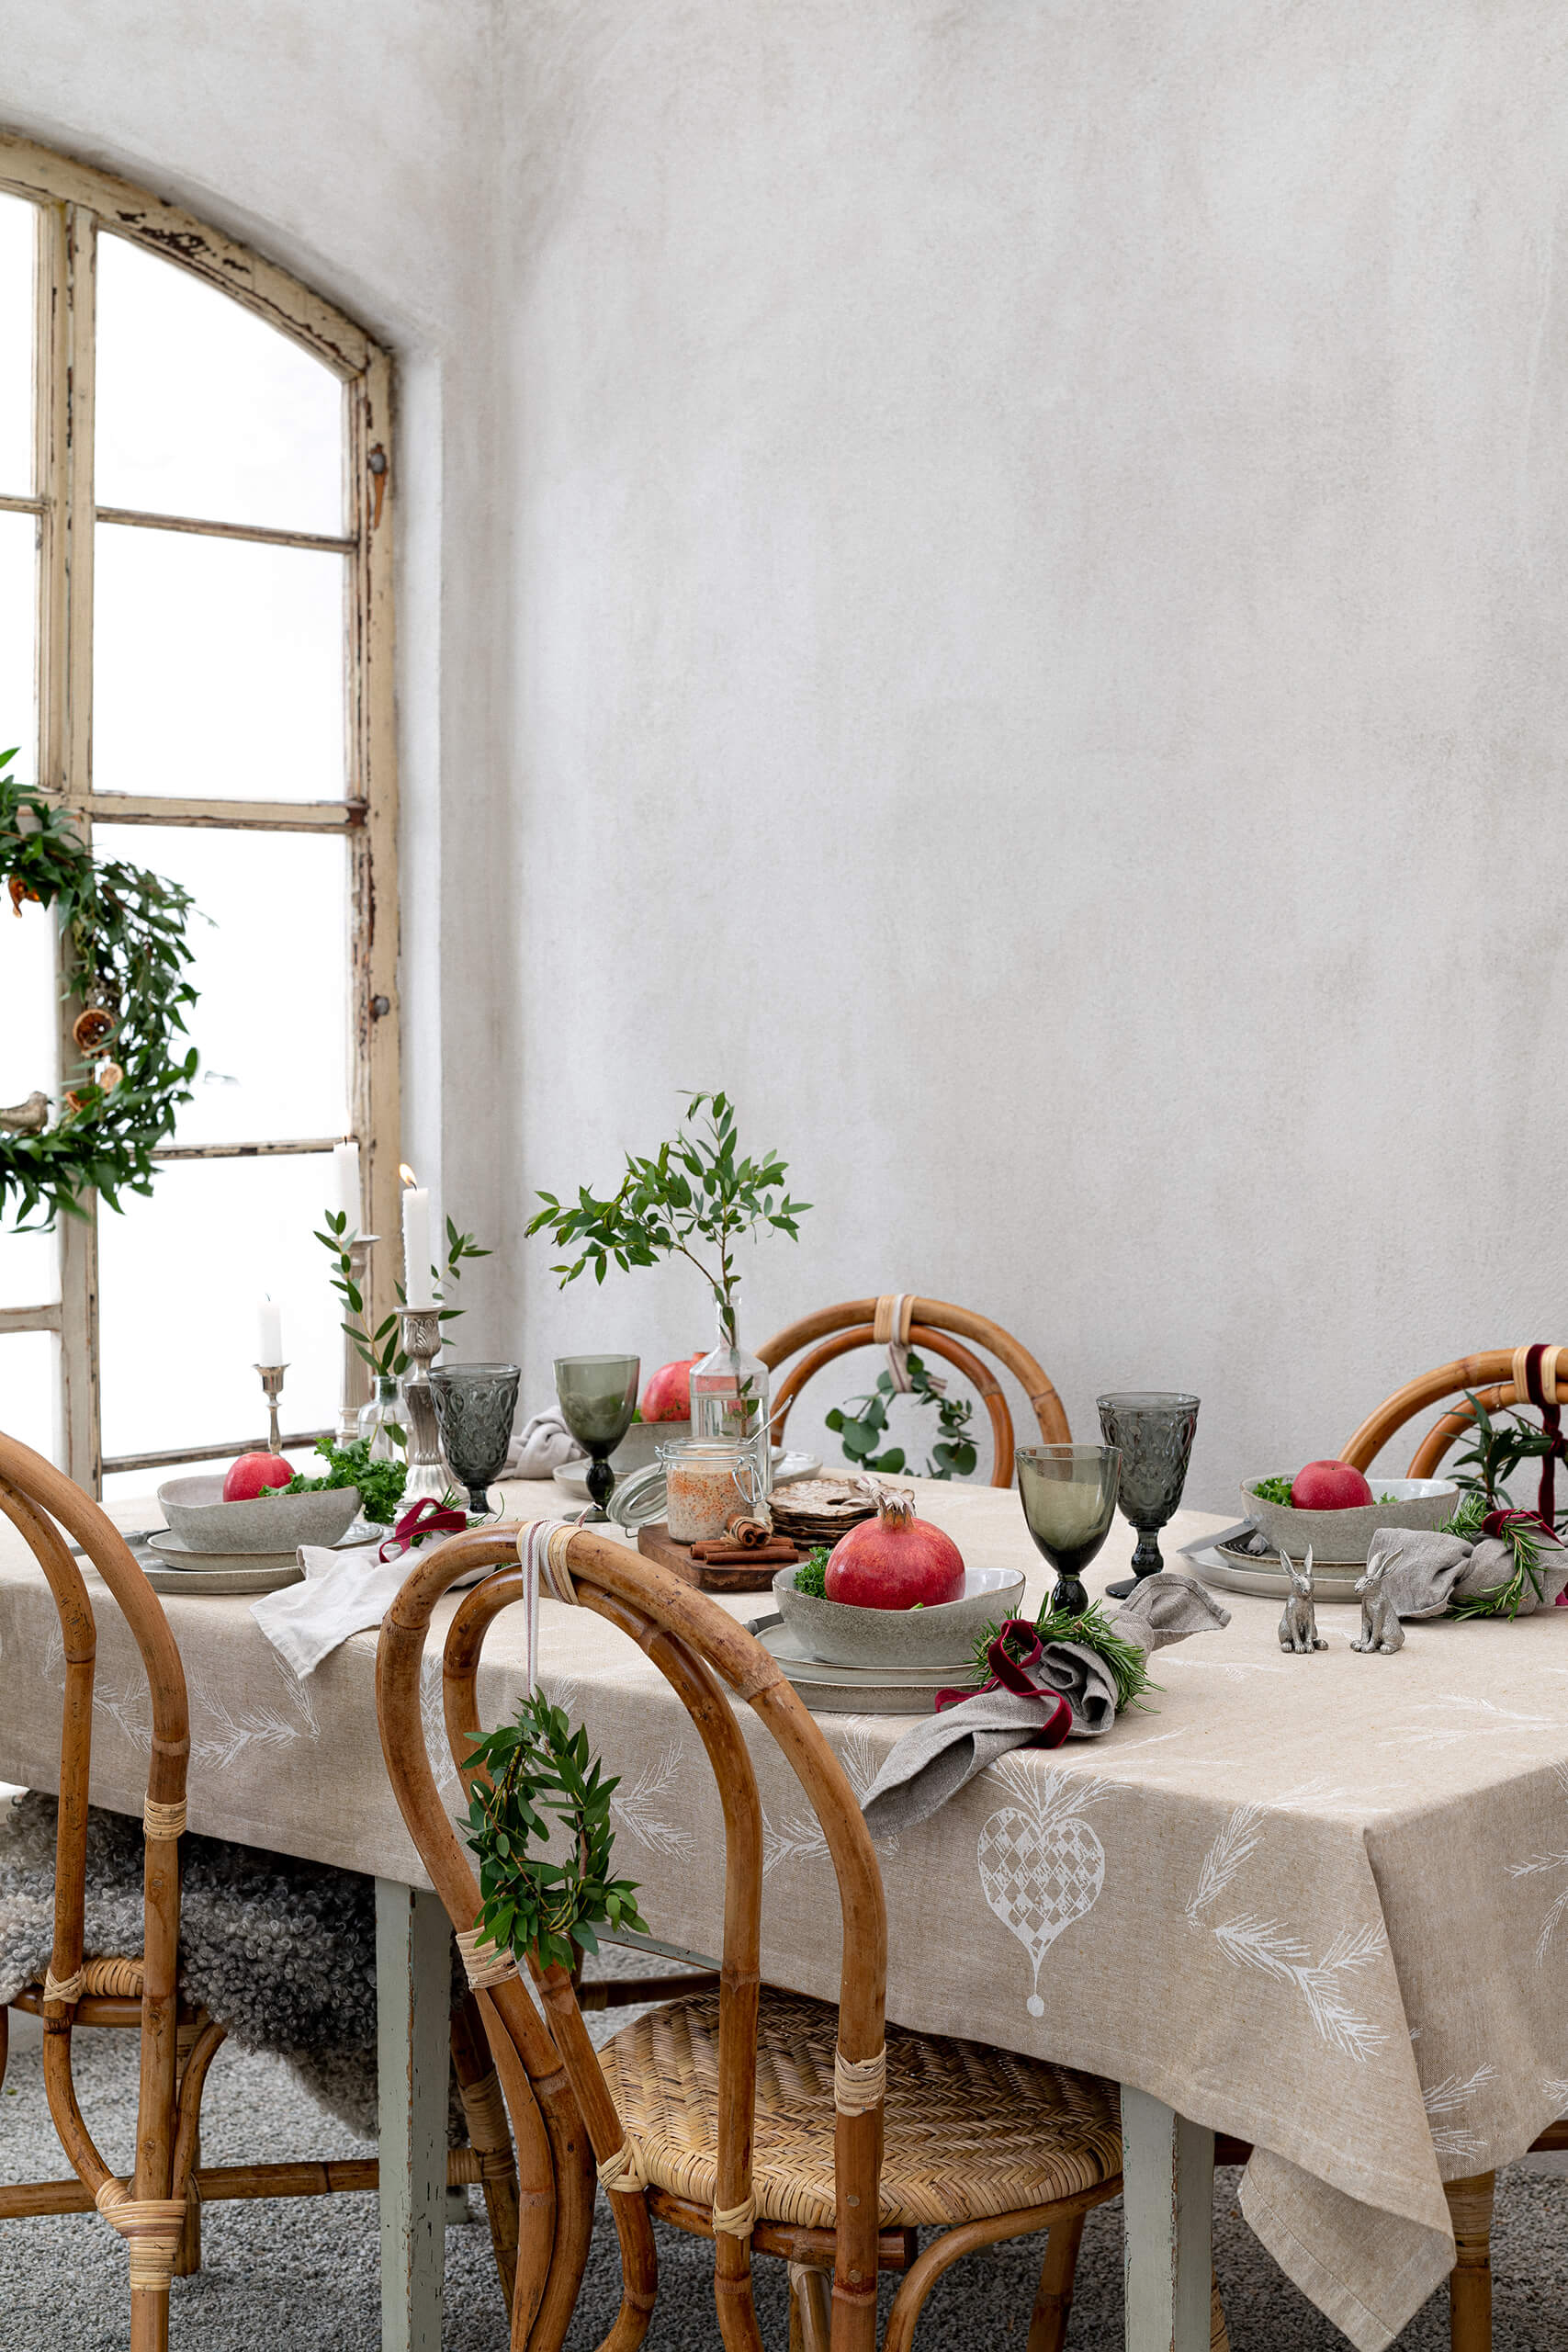 Christmas table by a window, candelabra, plates, glasses och flowers.